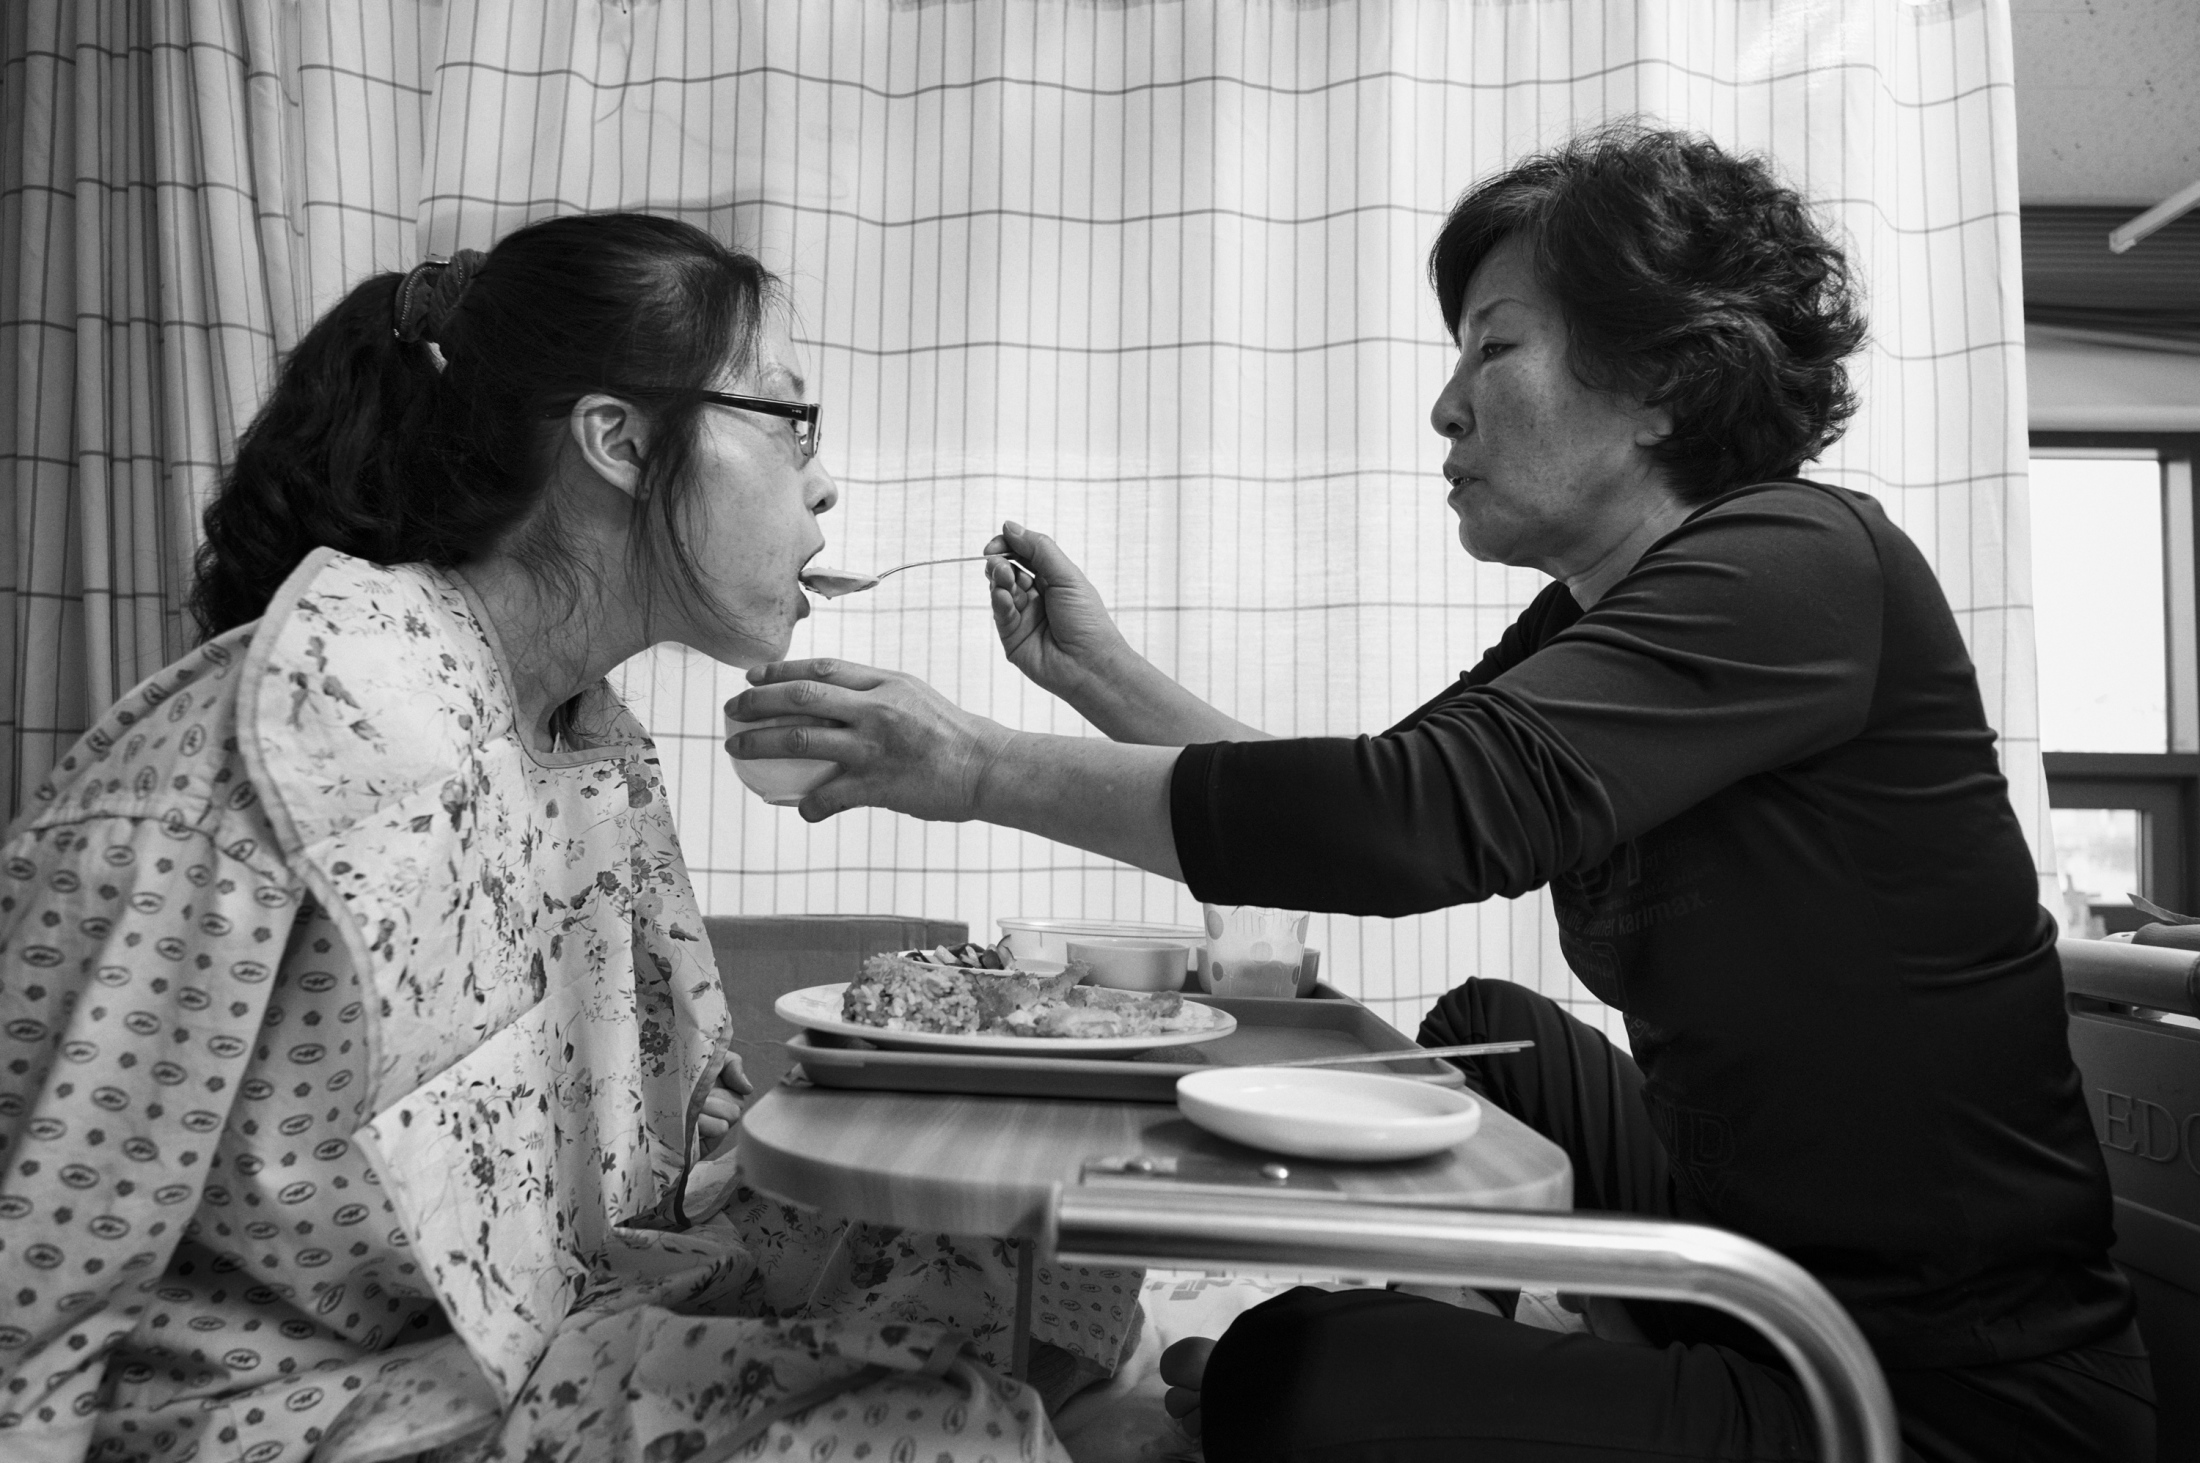 Han Hye-kyung has lunch with help from Kim Shi-nyeo, her mother on her bed at Kangwon National University Hospital in Chuncheon, Gang-won province, South Korea on Mar. 7, 2013